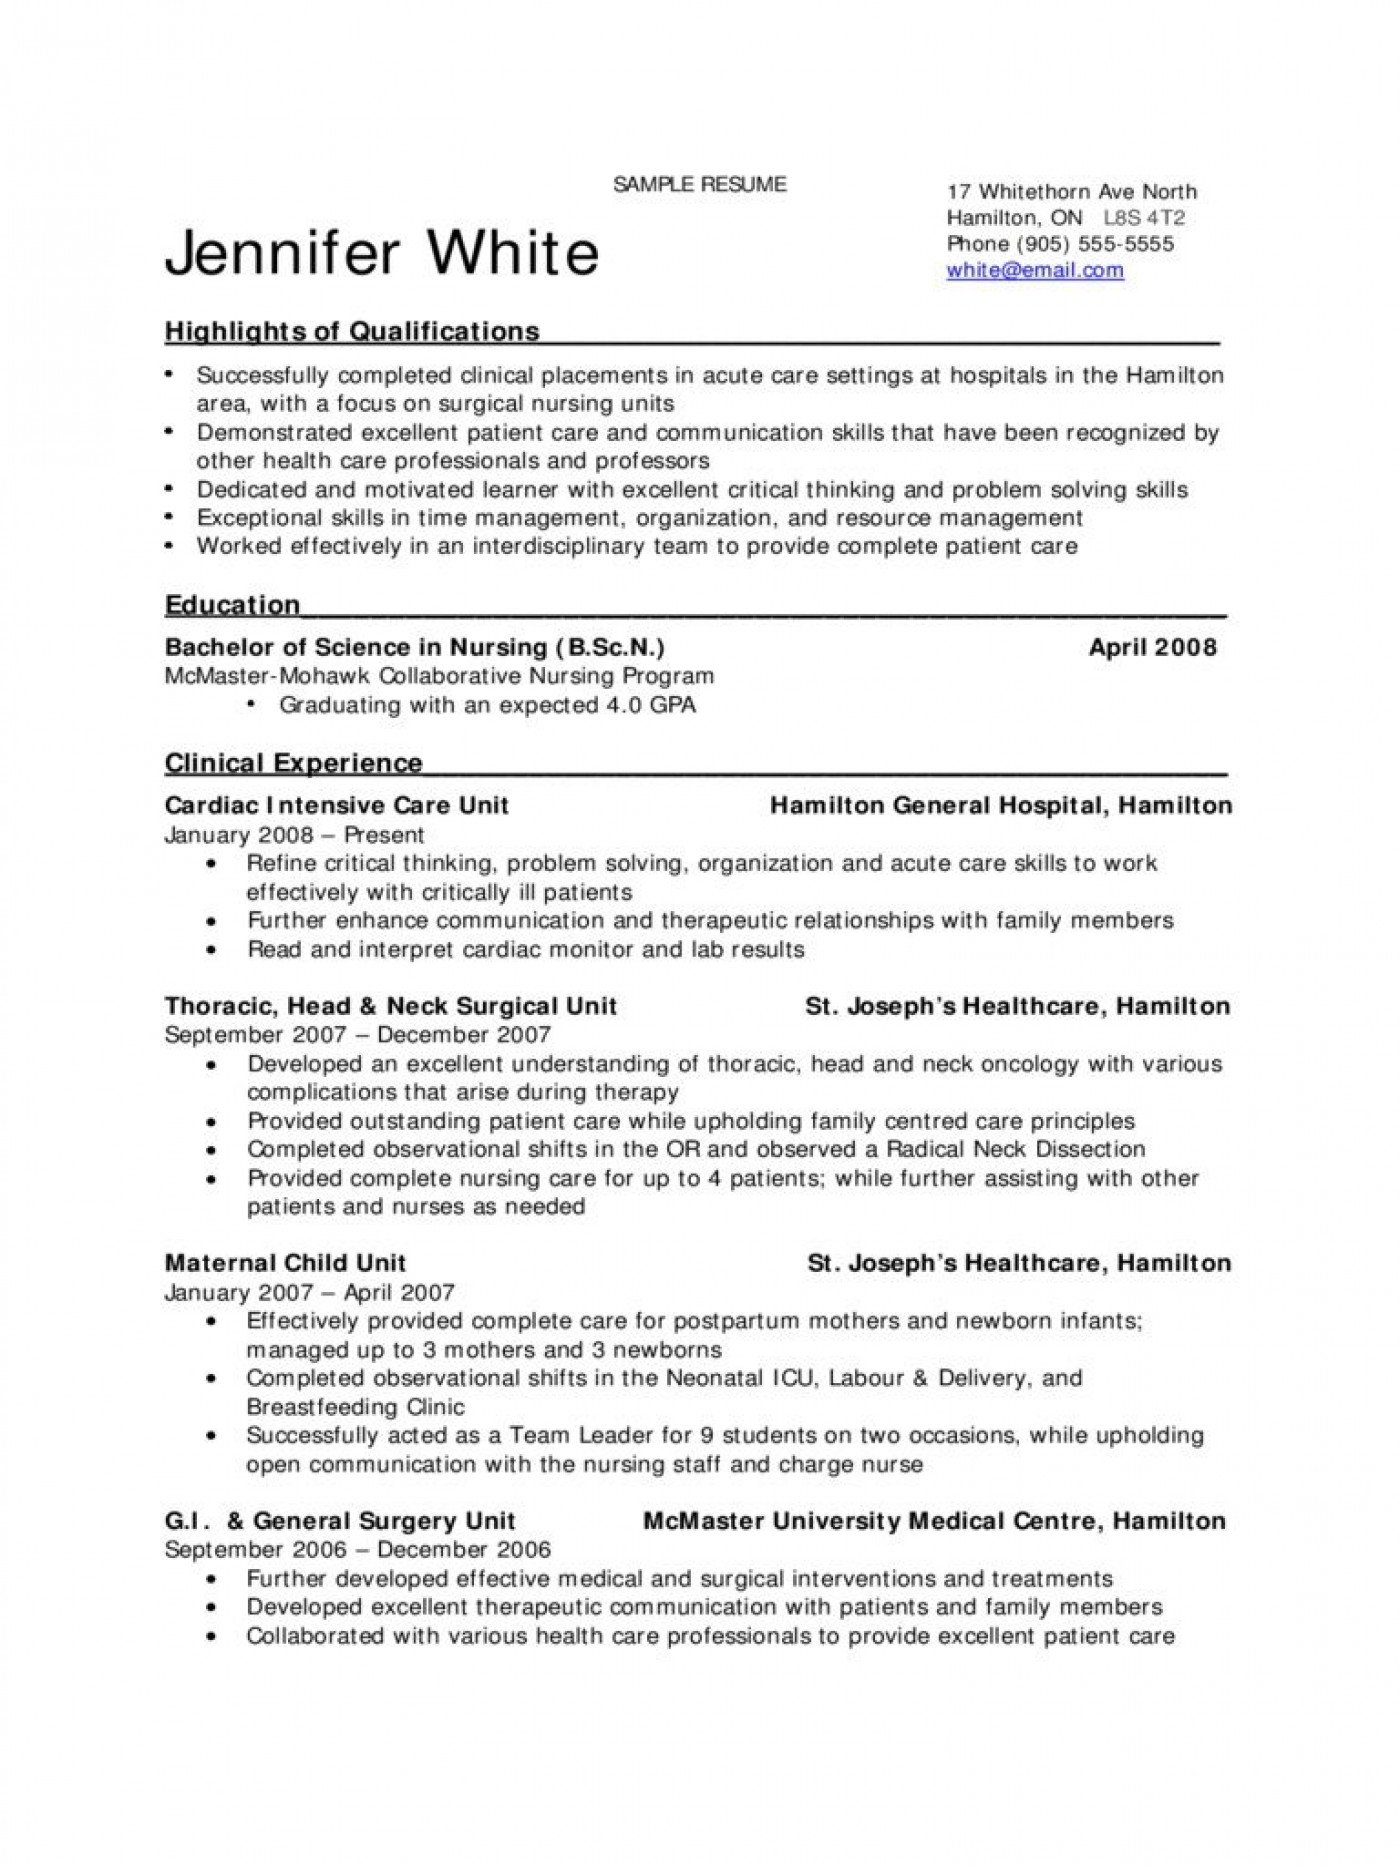 009 Excellent New Grad Nursing Resume Template Example  Graduate Nurse Practitioner1400